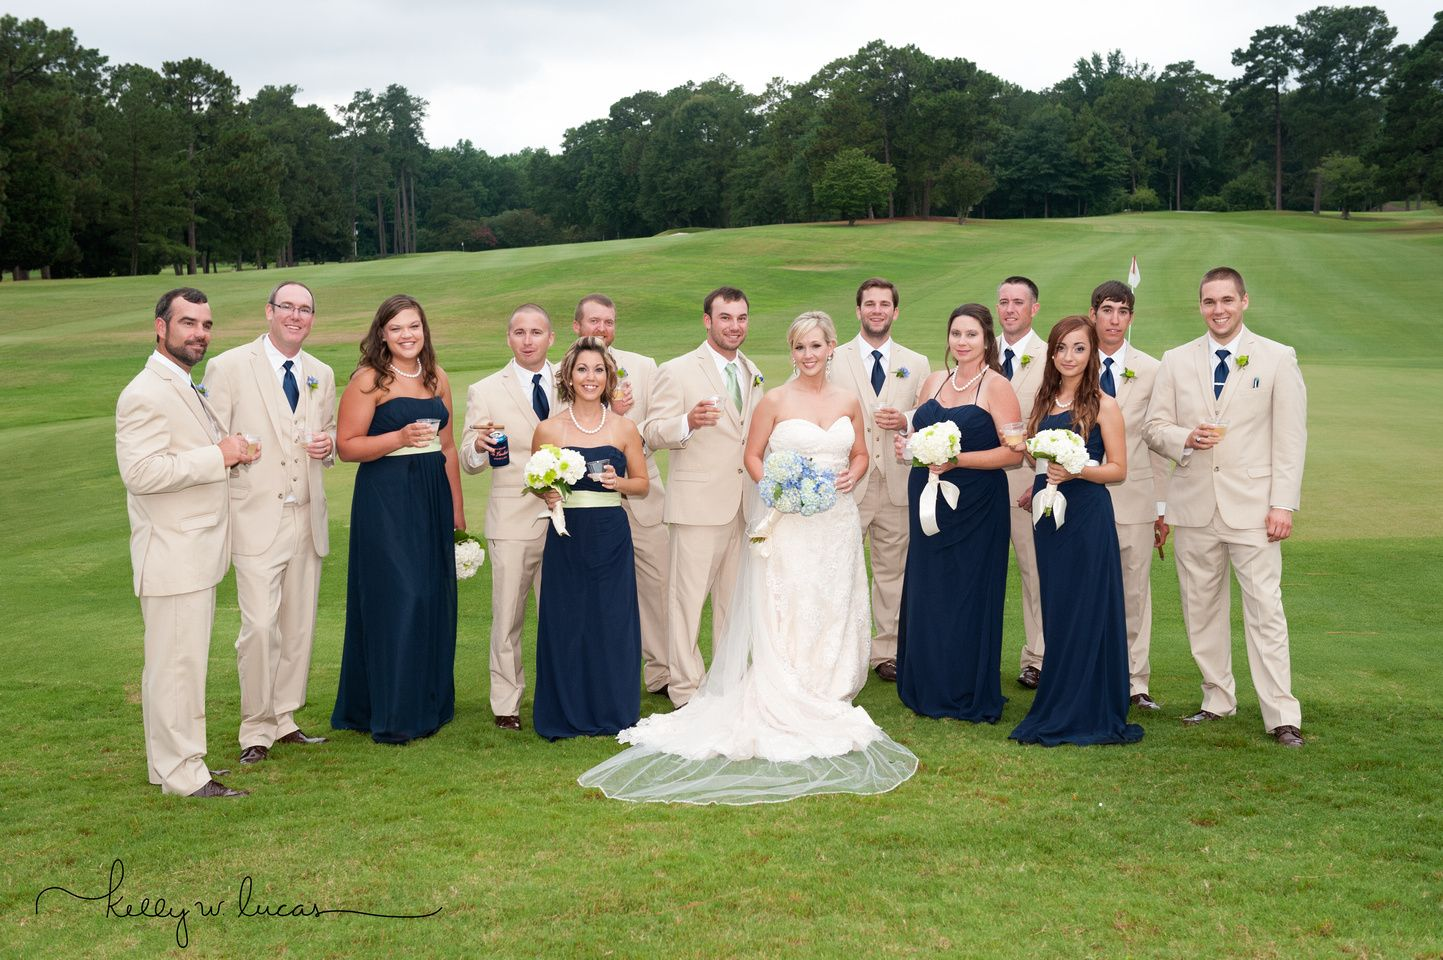 Wedding party on the th green at camden country club in camden sc